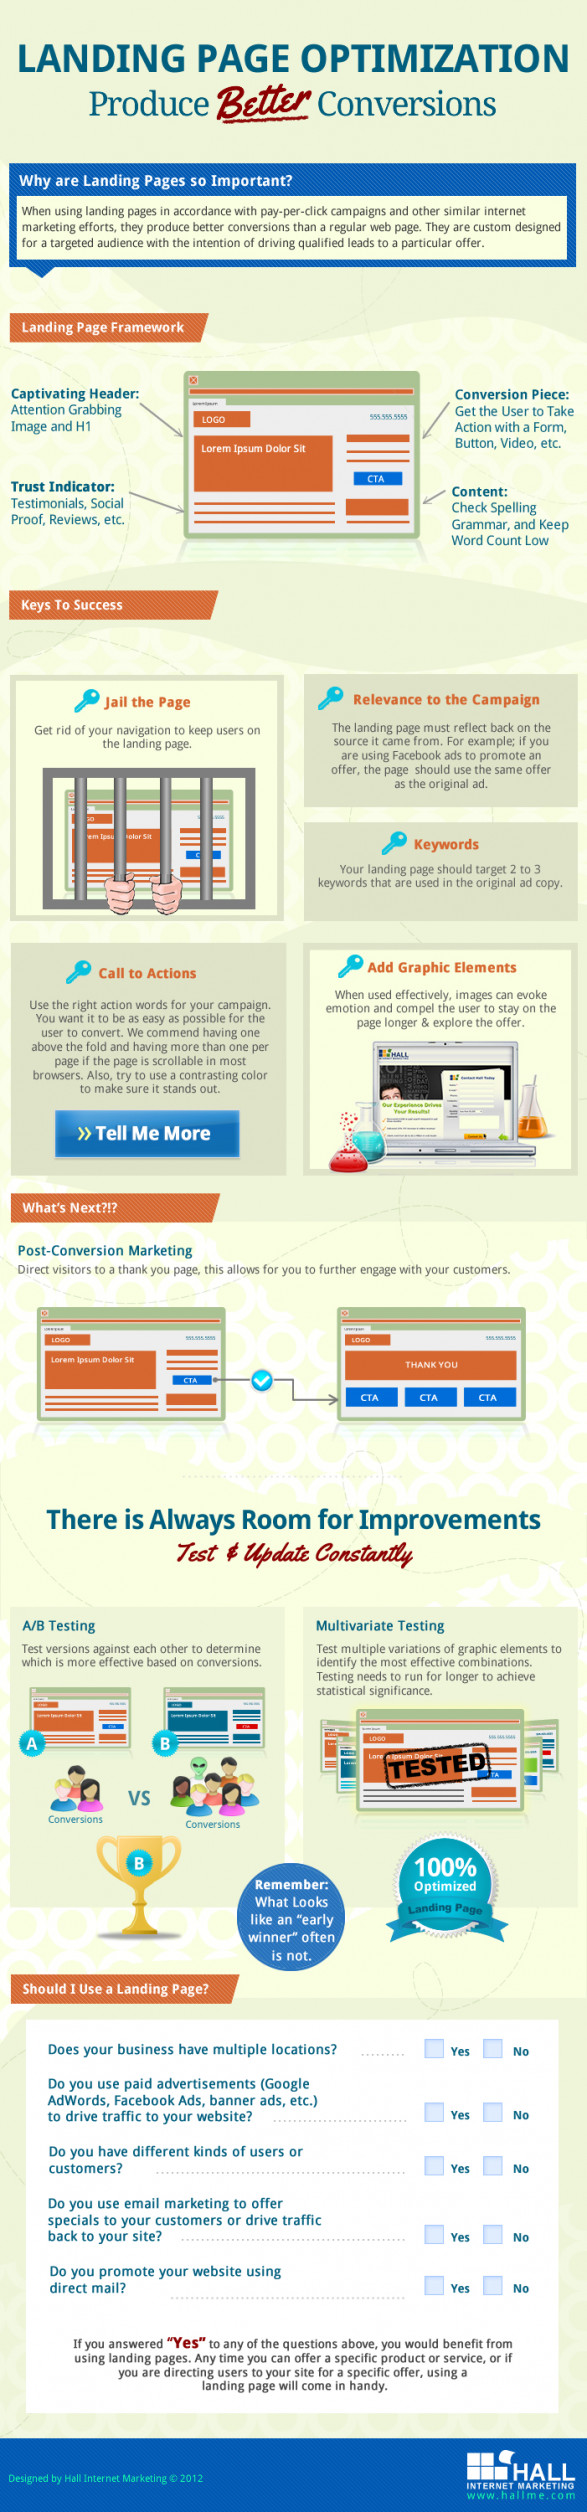 Landing Page Optimization - Produce Better Conversions